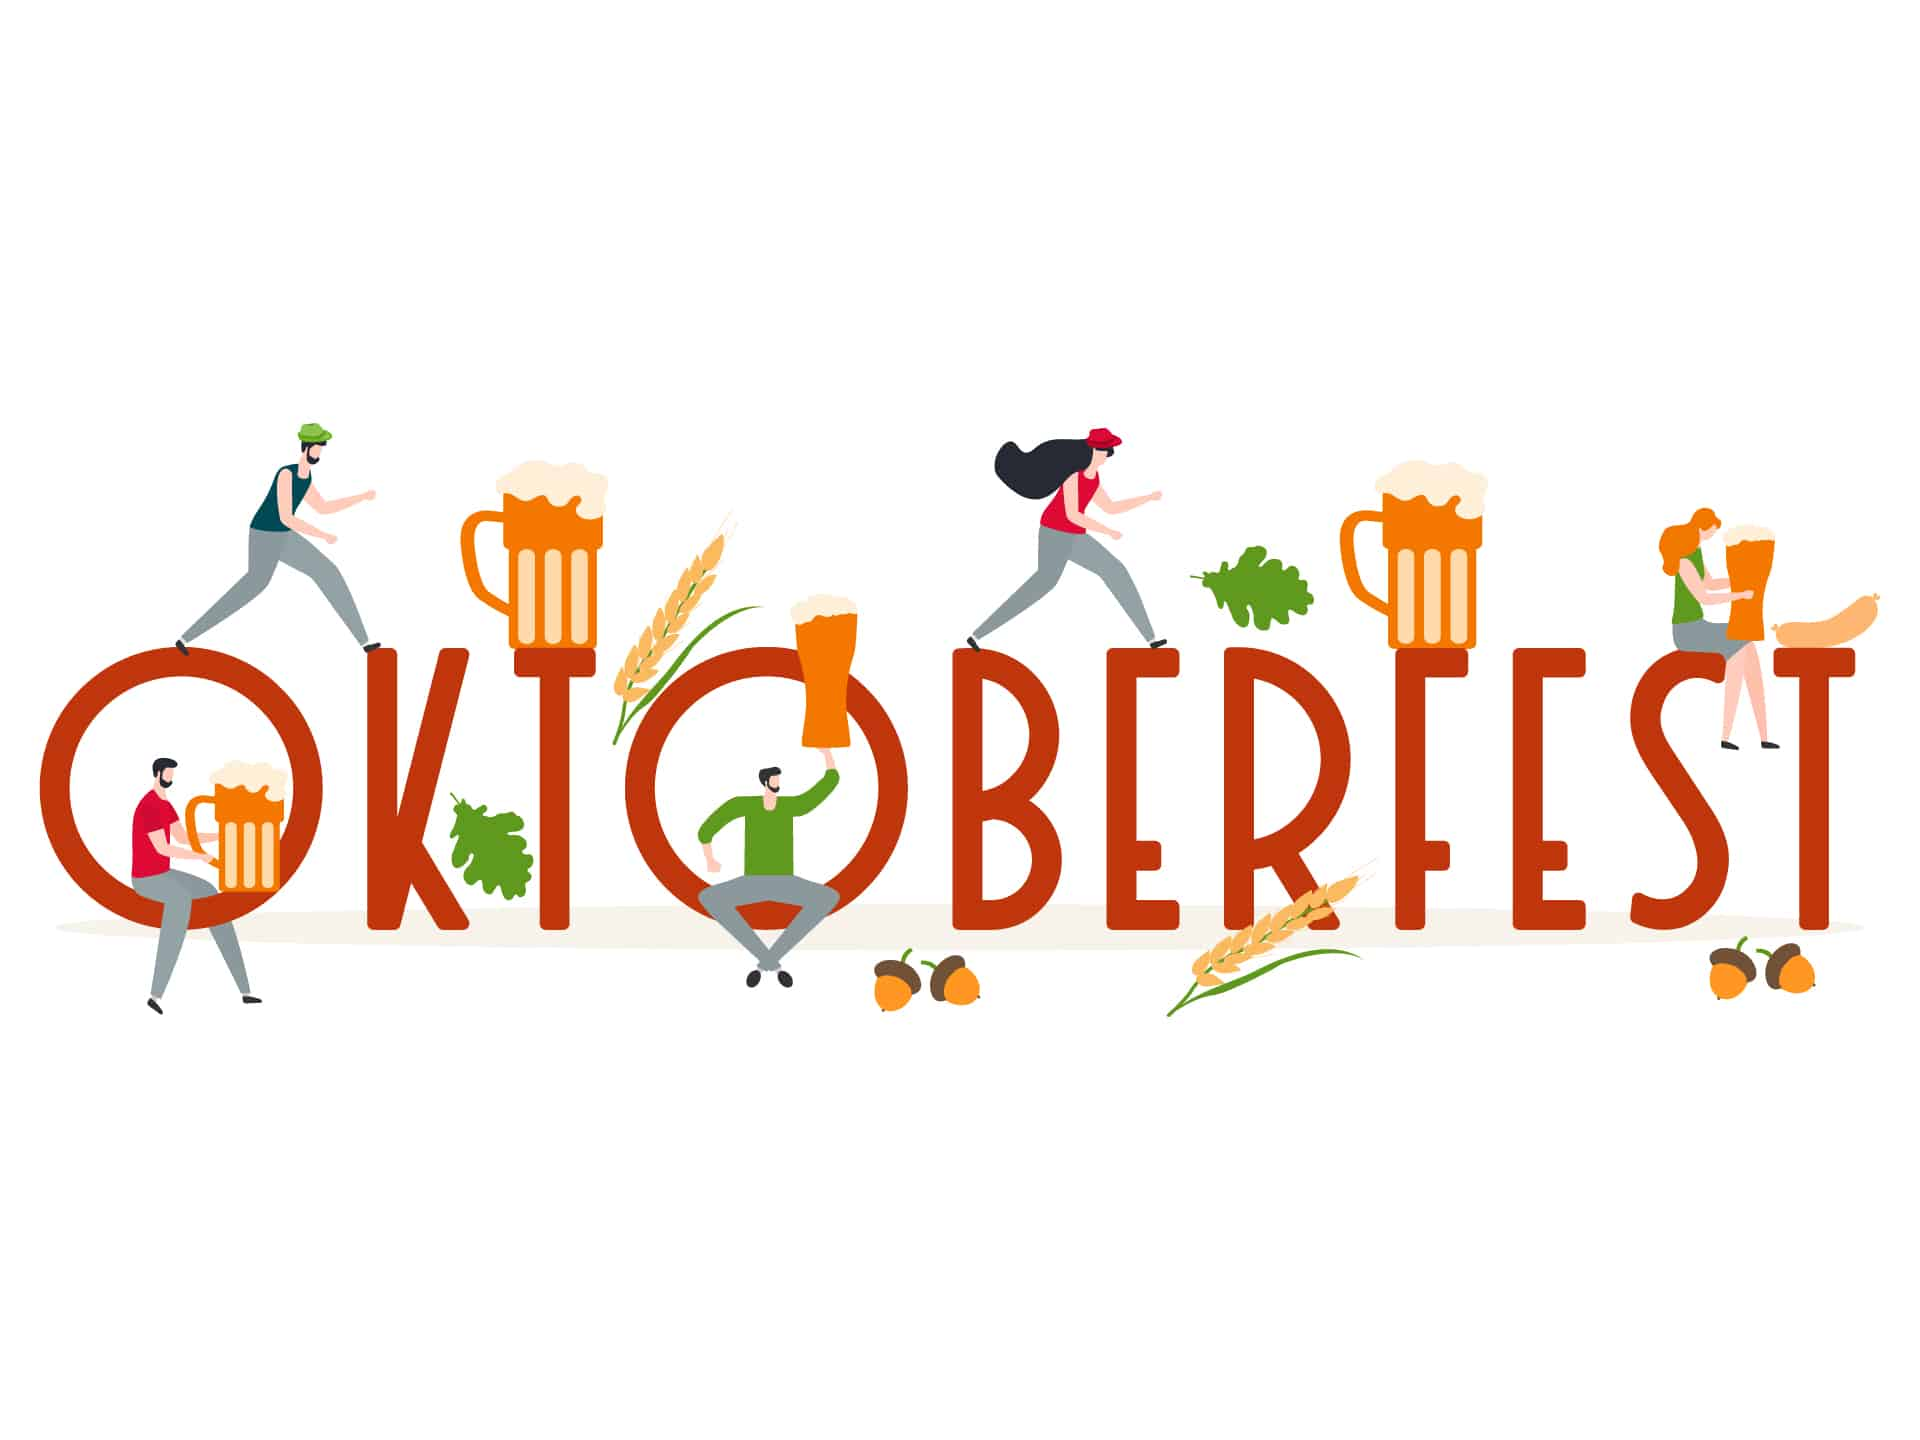 West Virginia Public Theatre's Oktoberfest Image